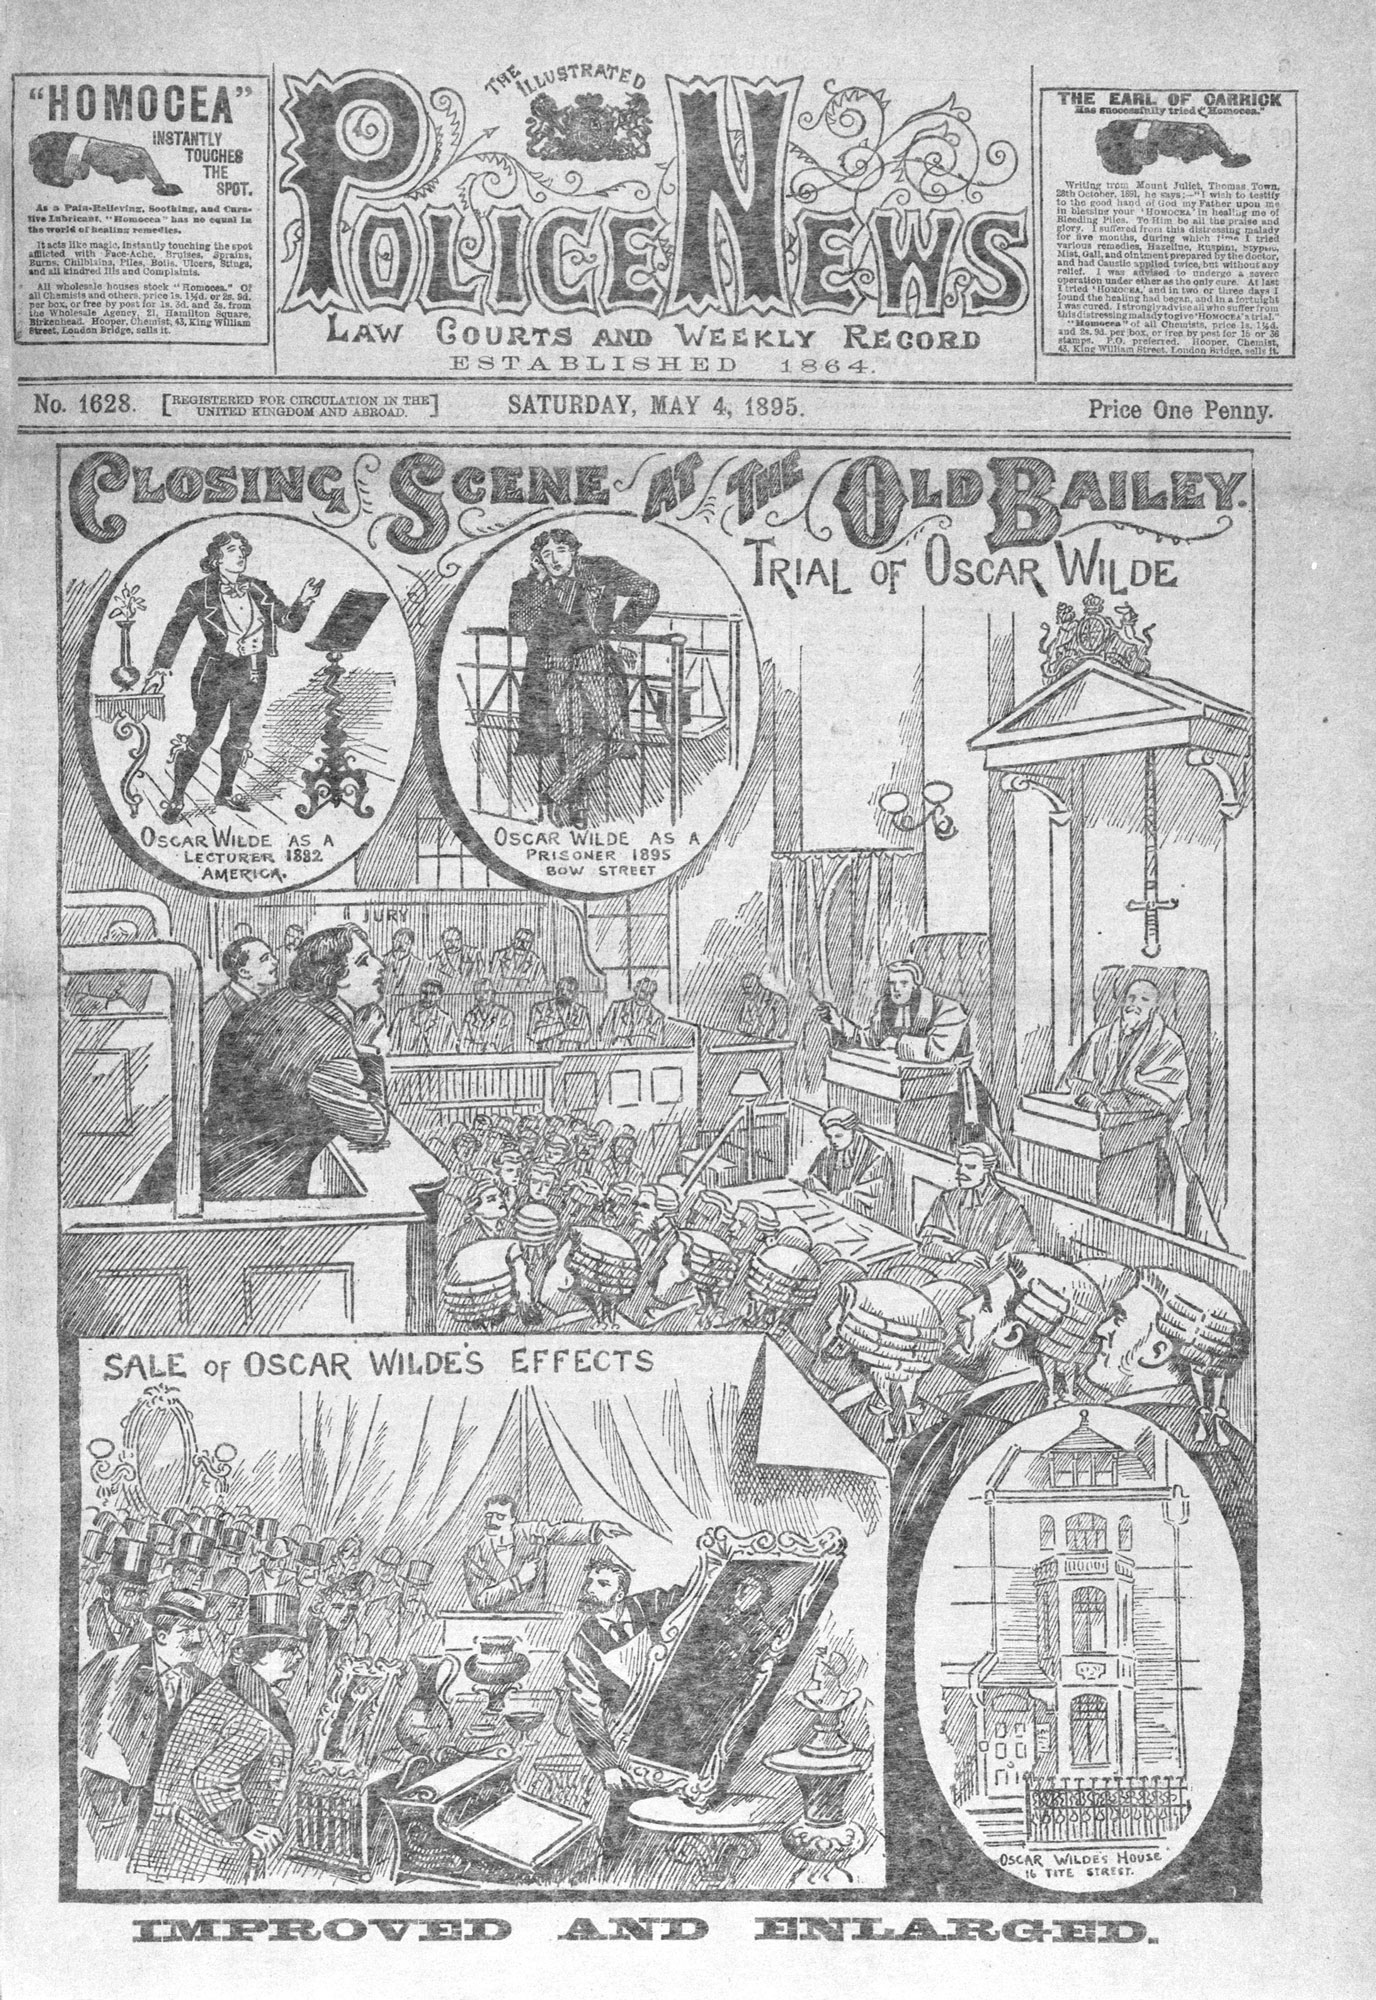 'Closing scene at the Old Bailey': newspaper coverage of the Oscar Wilde trial